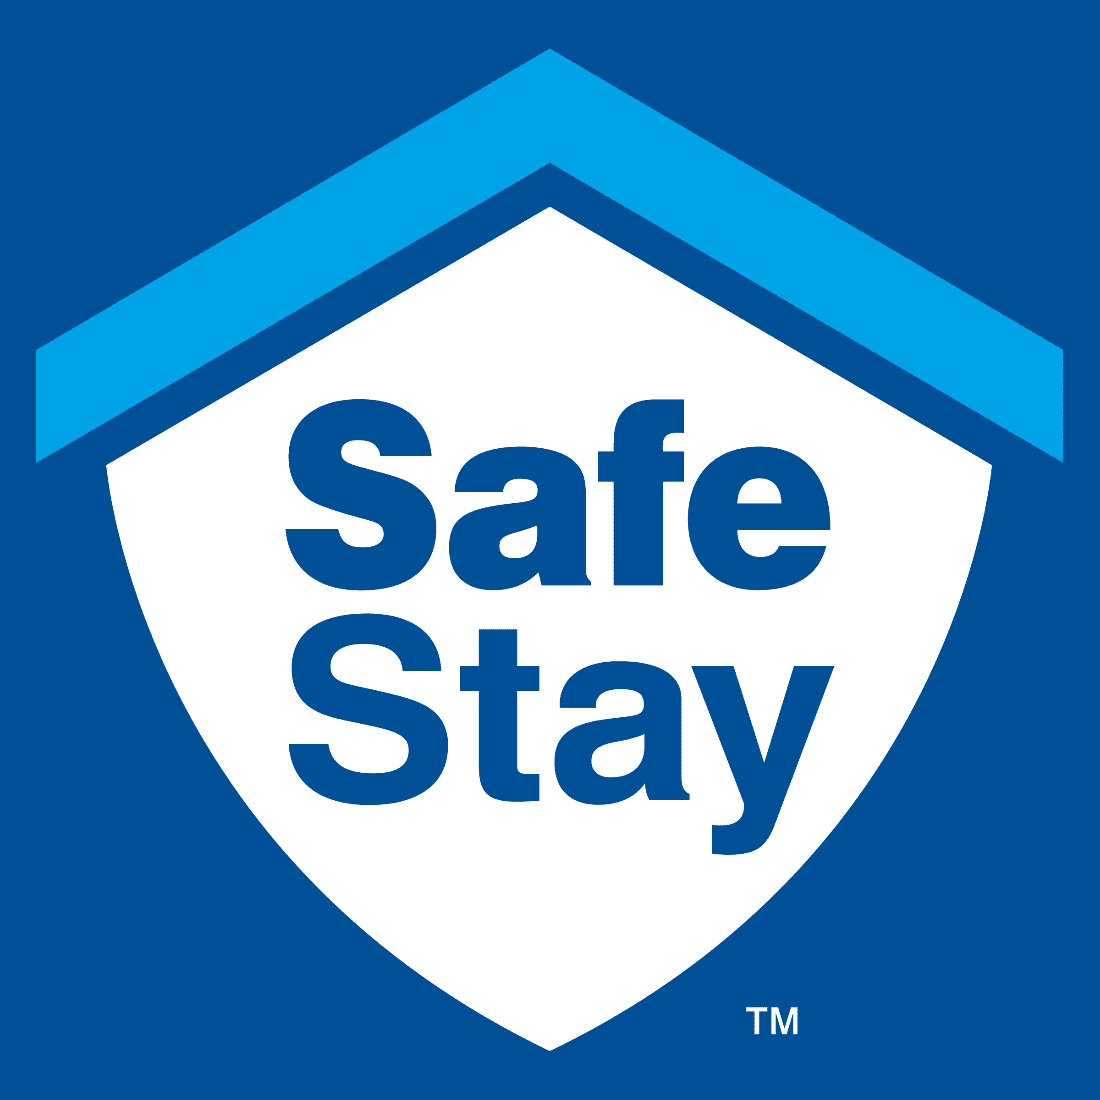 safe stay logo white shield with light blue